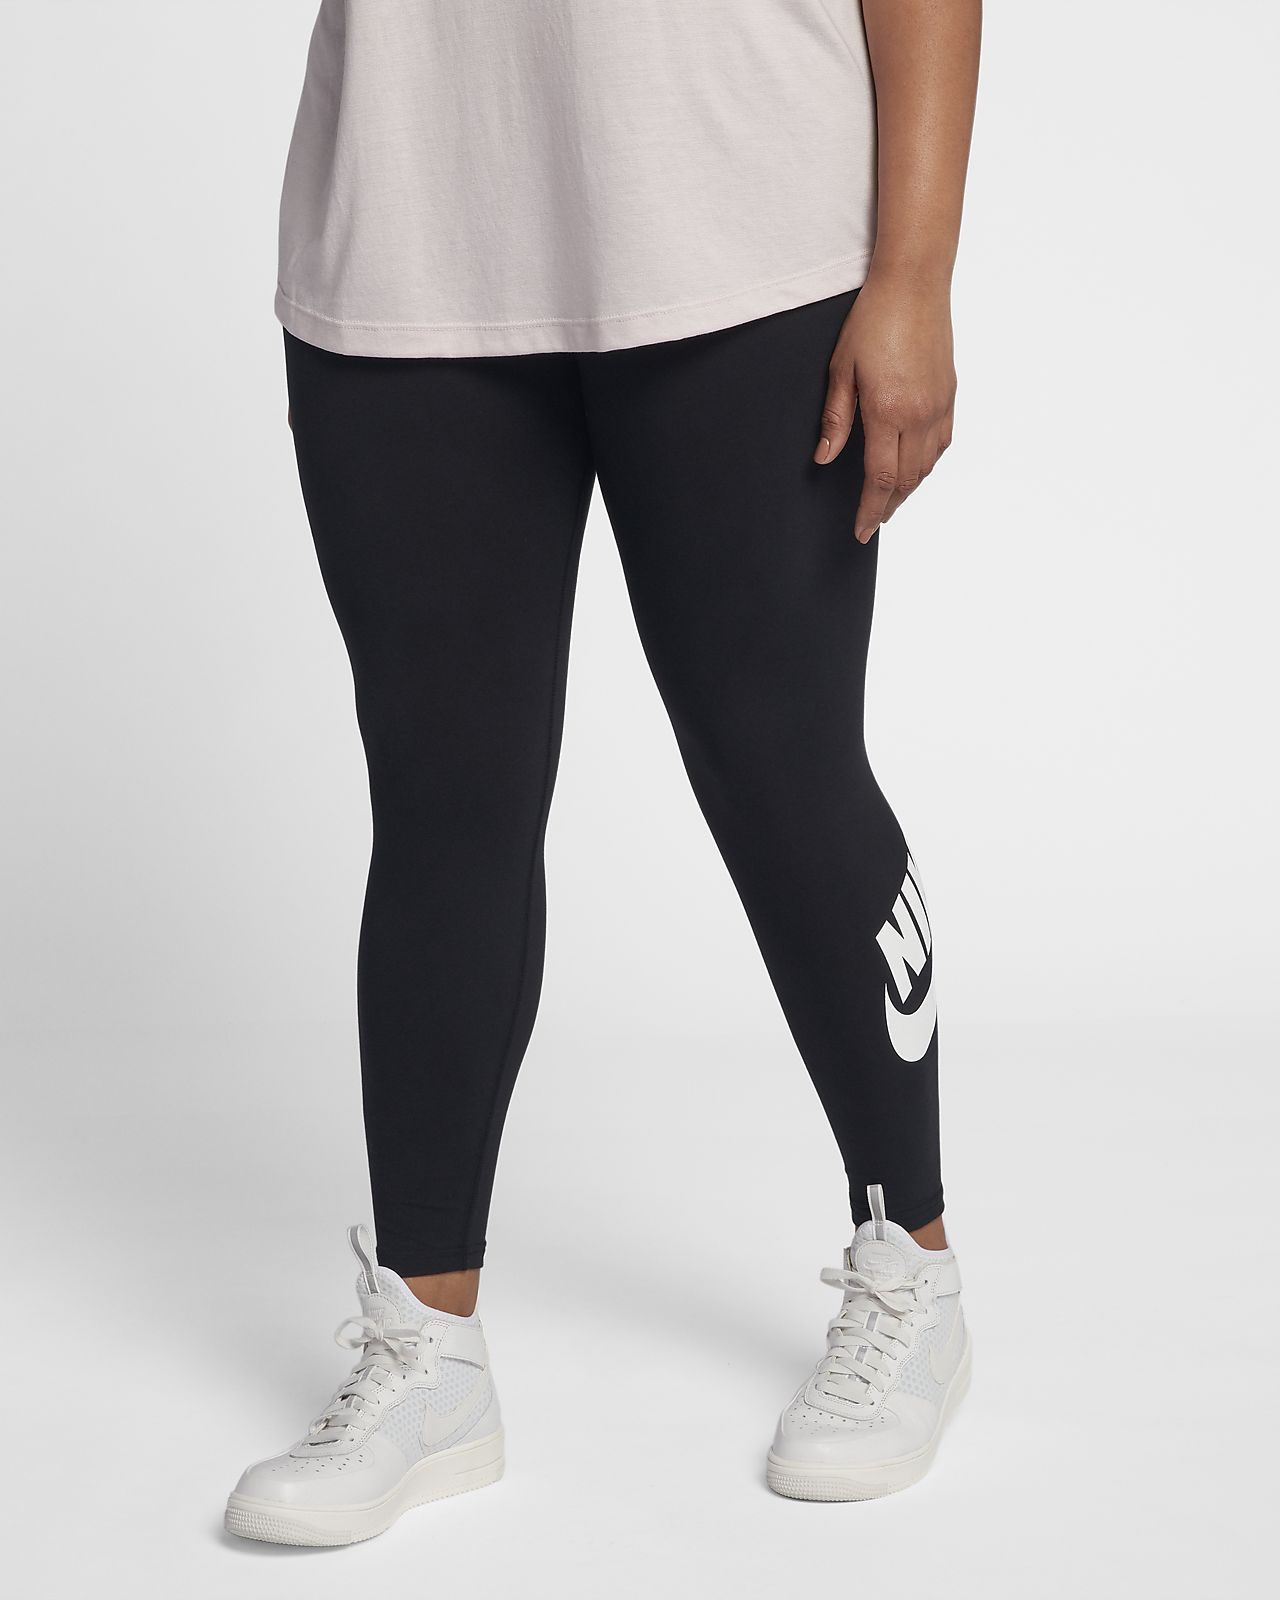 Plus Leg-A-See High Waisted Leggings In Black - Black Nike z6gmIS5fl